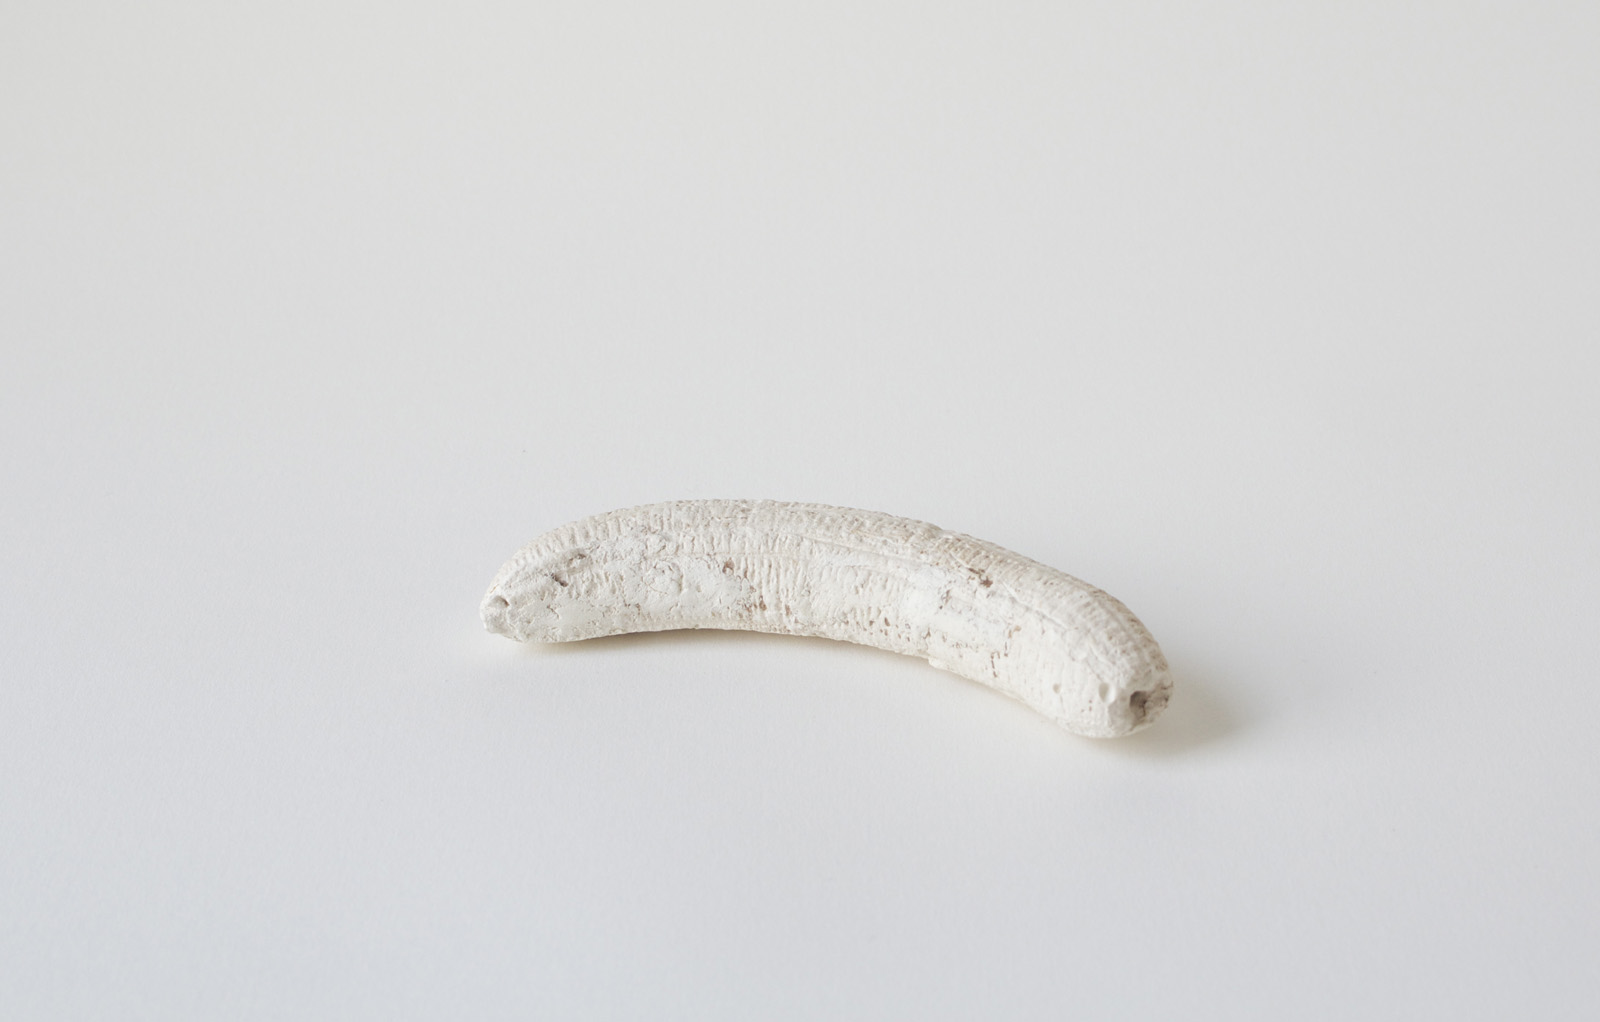 Single (banana),  2013  Plaster  7 x 2 x 1 in